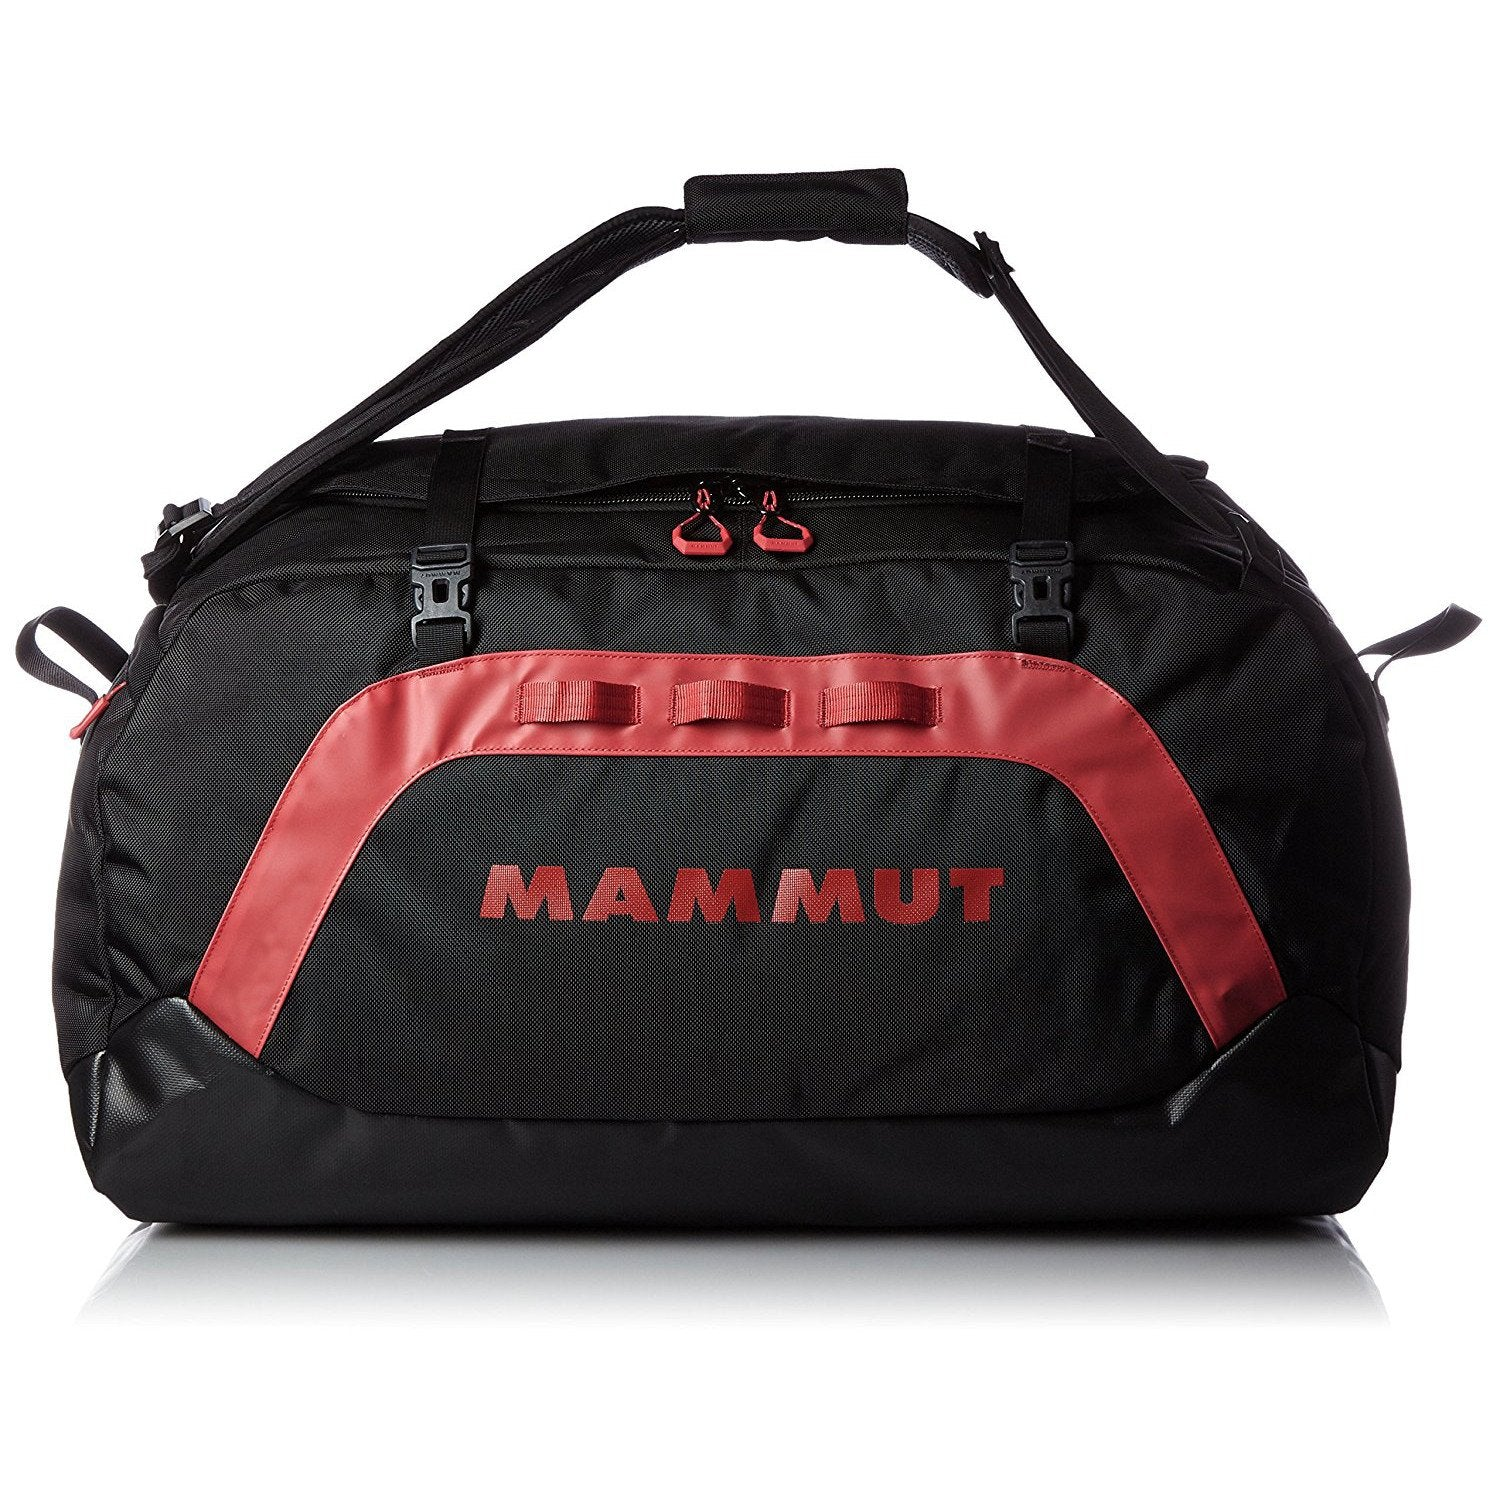 Mammut Cargon Holdall 90L, shown in holdall carry mode, in black/red colours